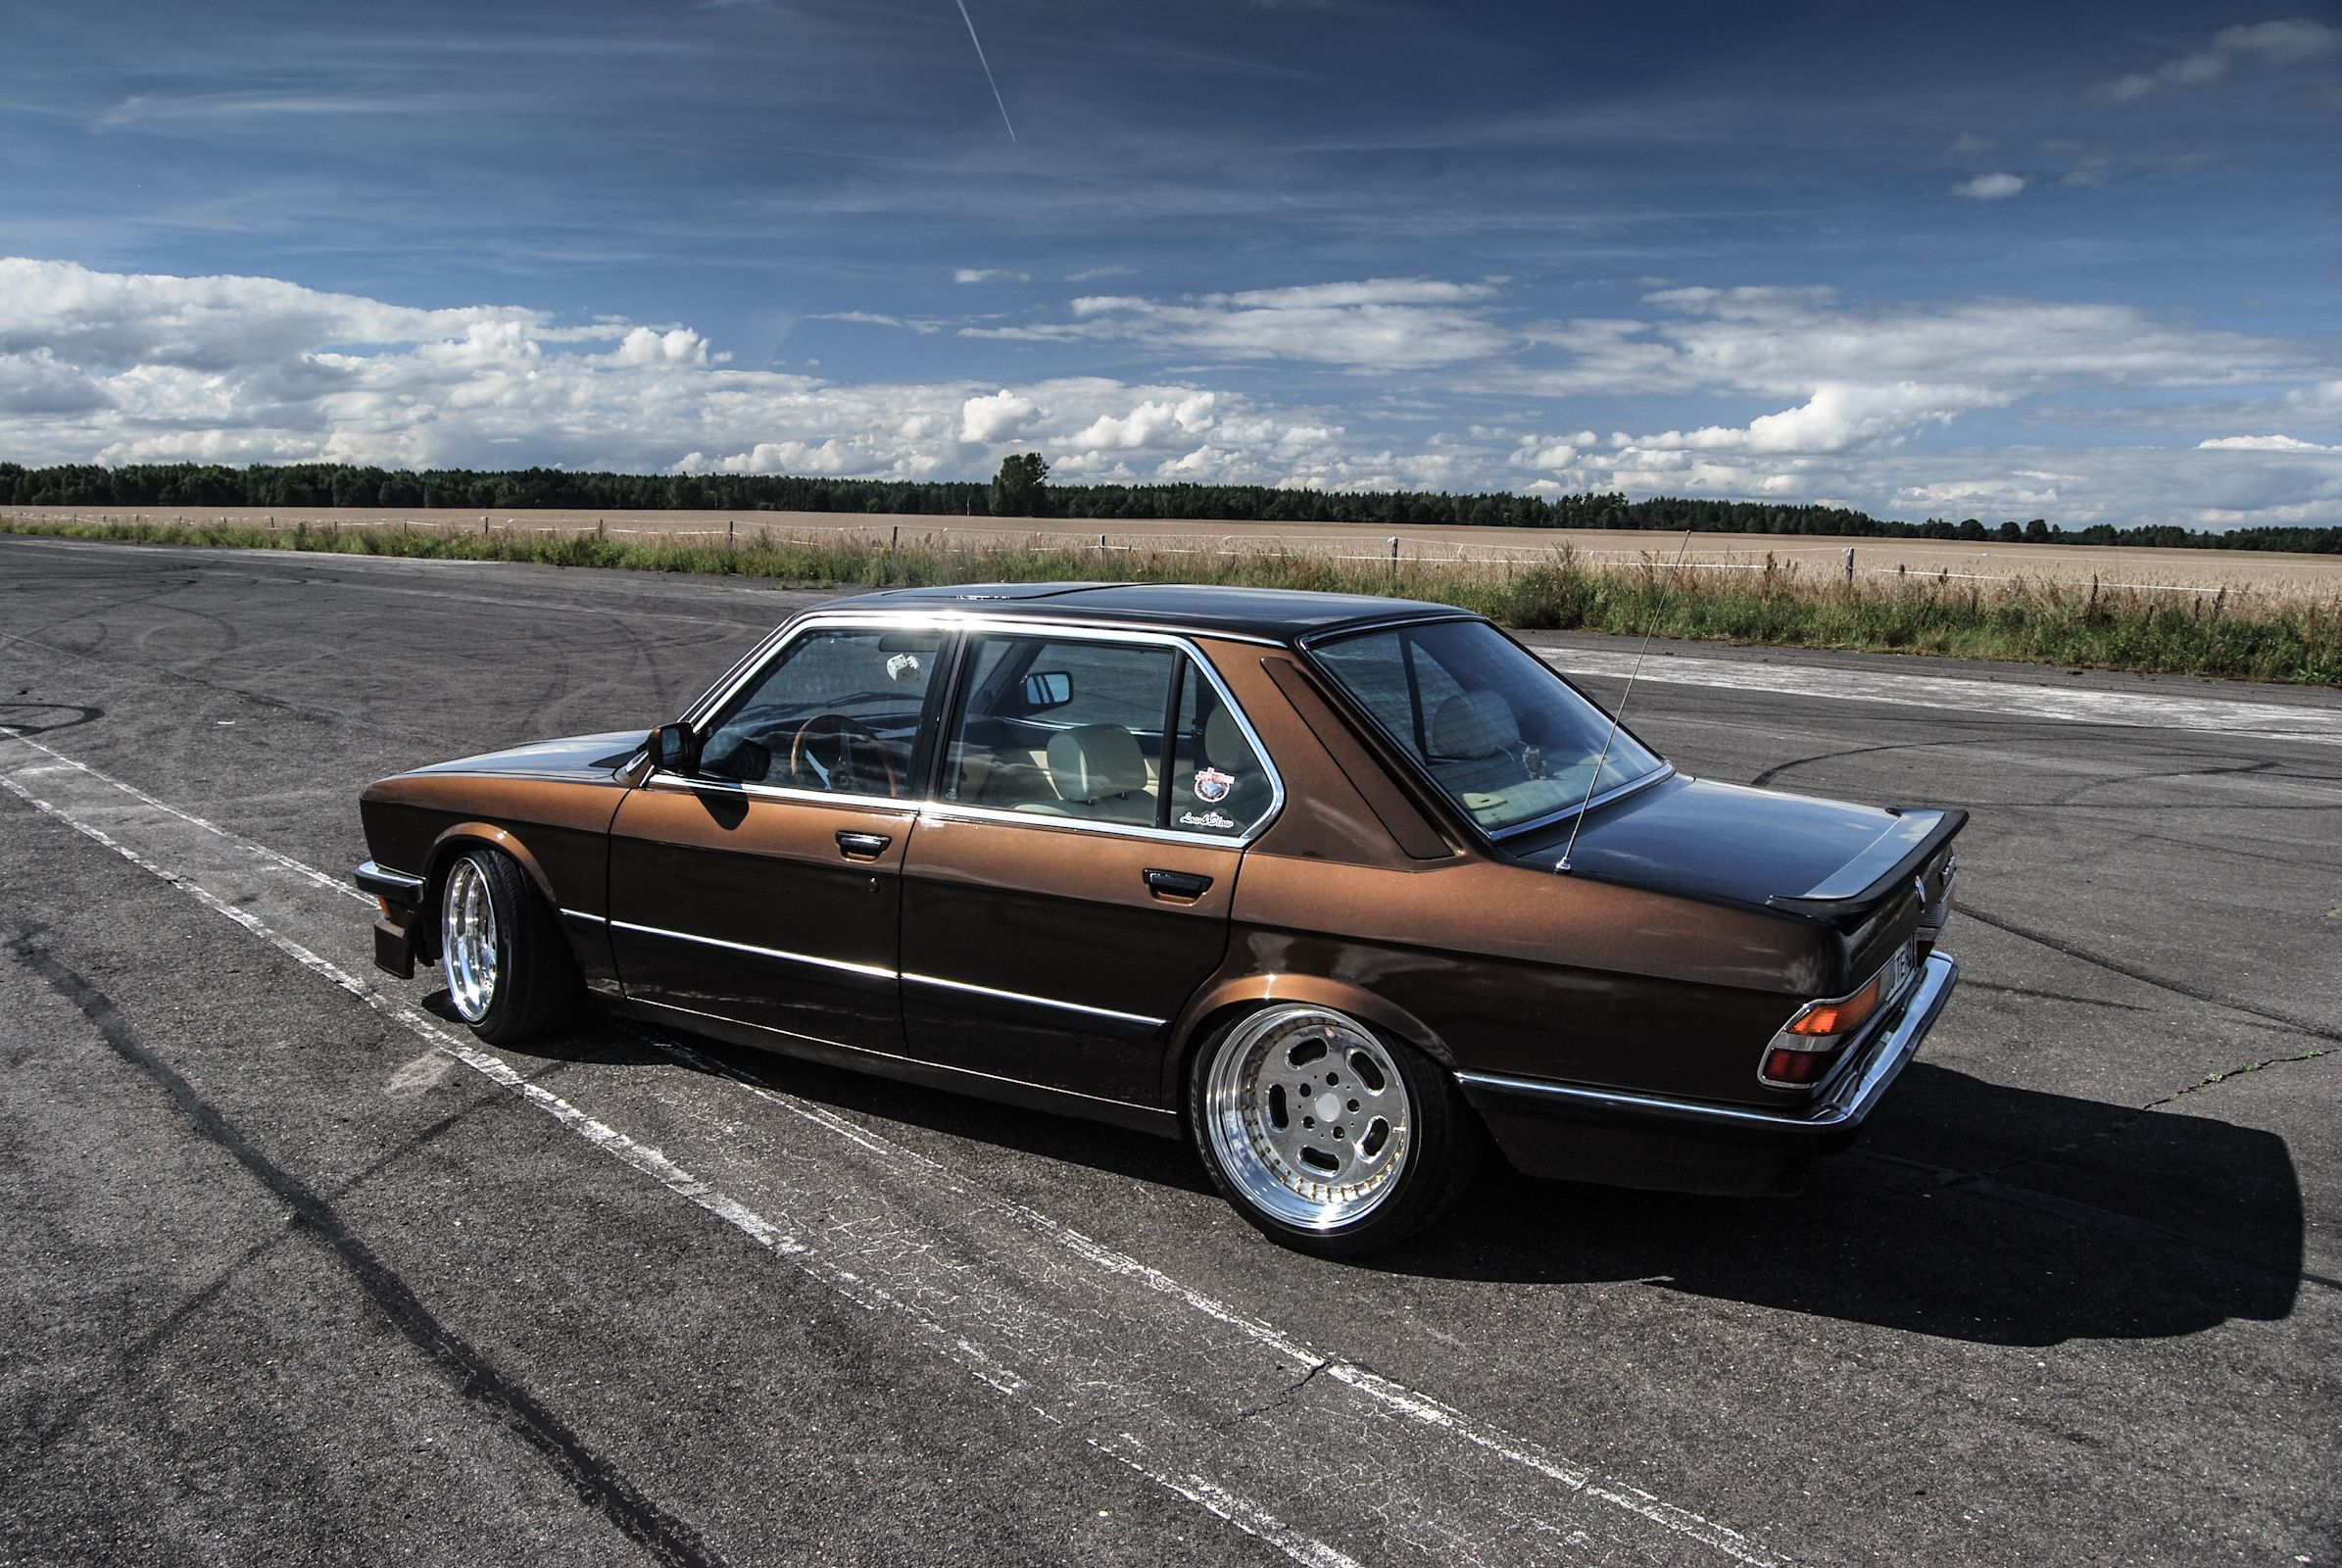 bmw e28 | Adorable Motors | Pinterest | BMW and Cars